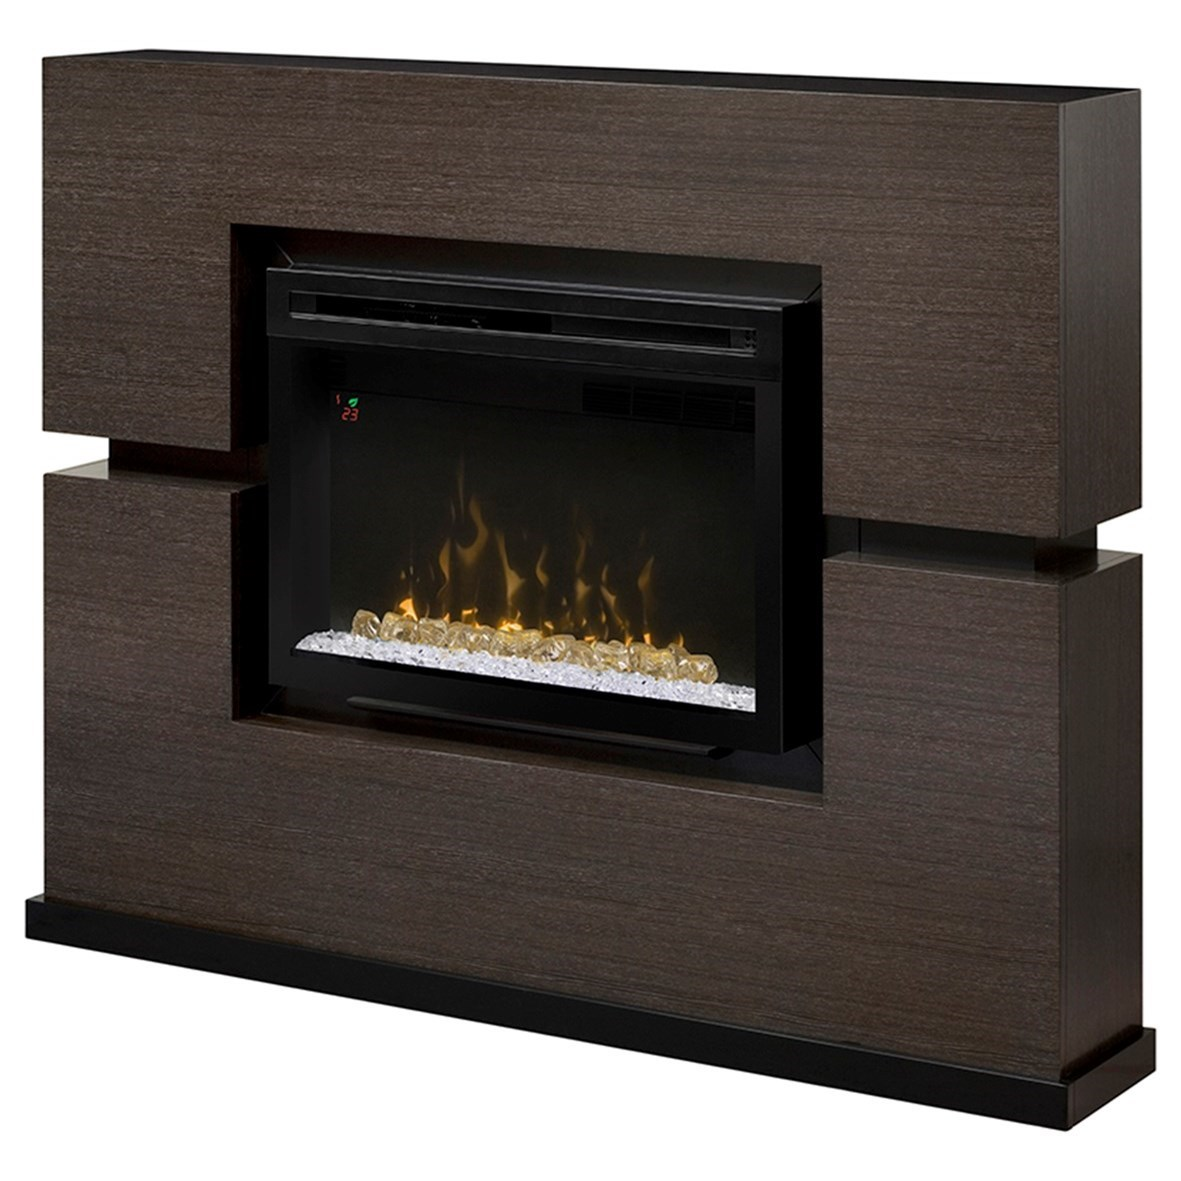 Linwood Fireplace and Mantel by Dimplex at Jordan's Home Furnishings